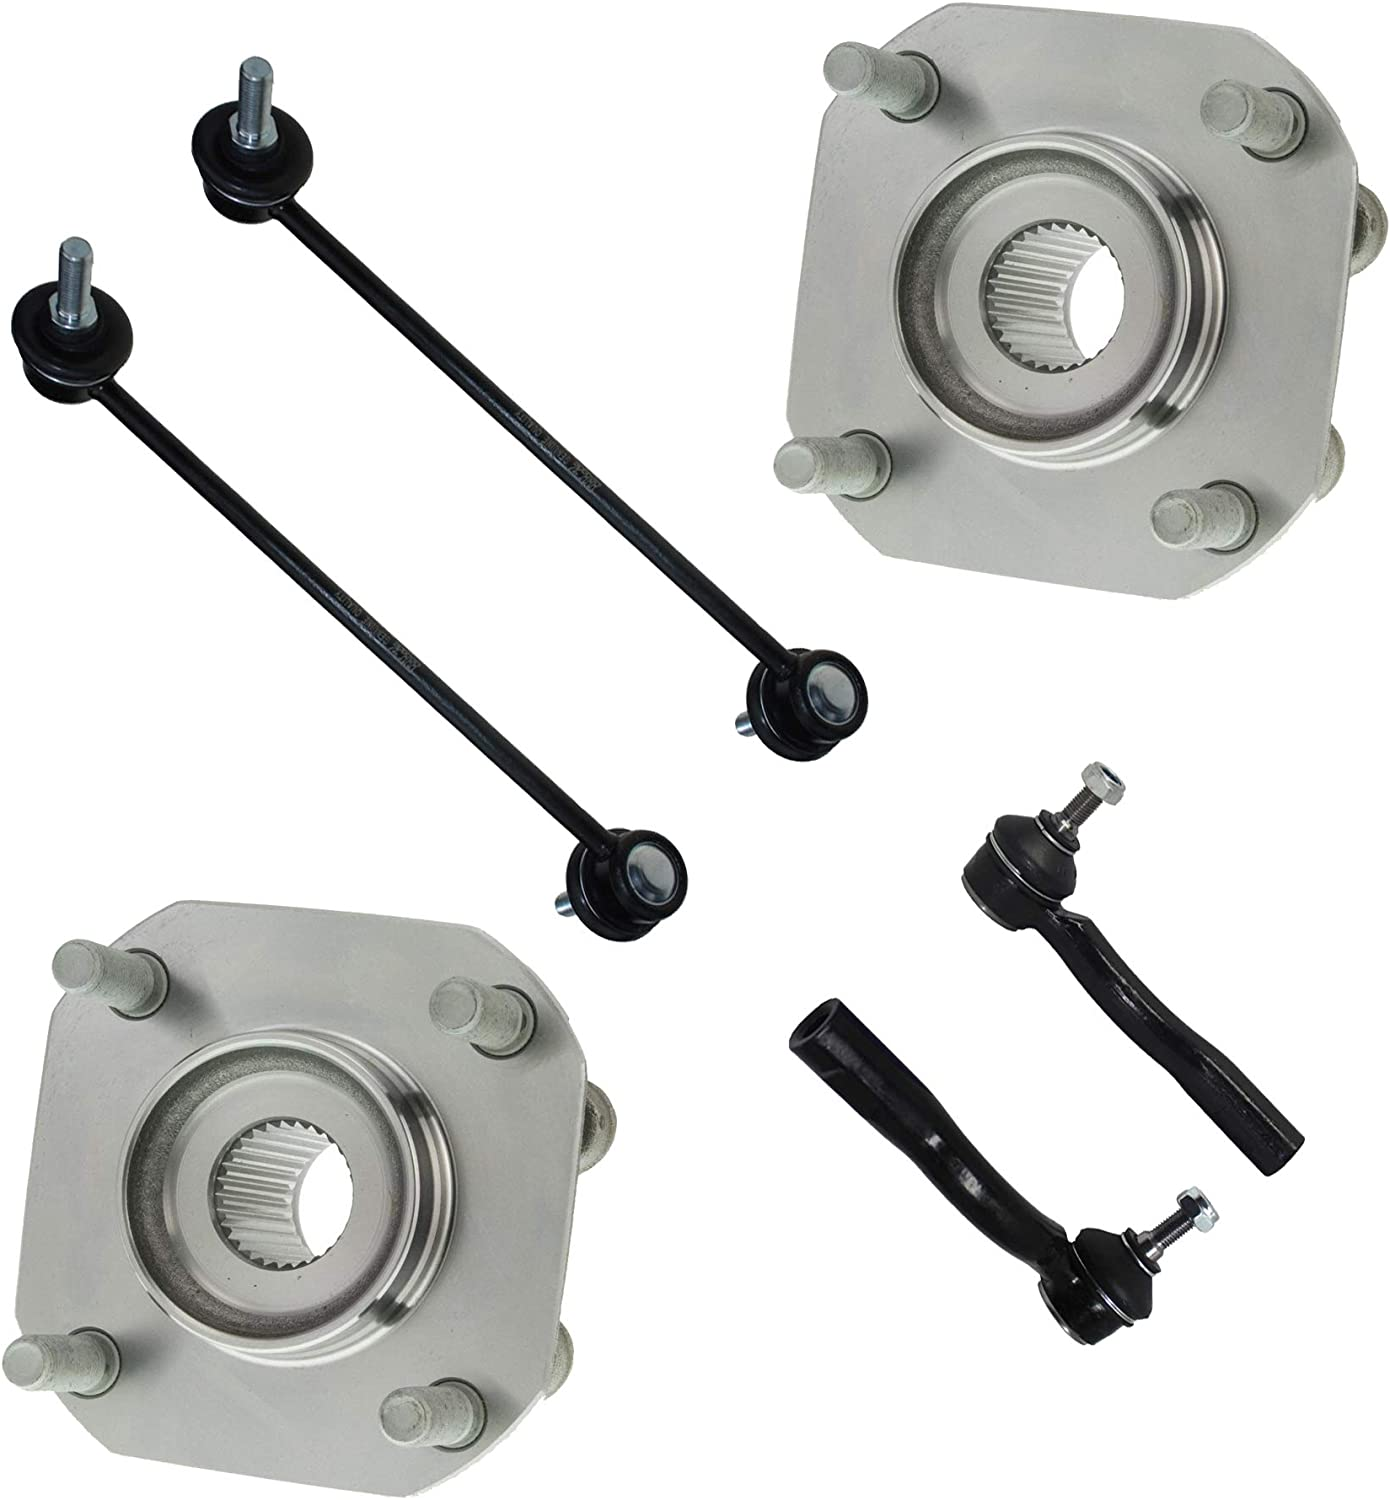 FRONT Wheel Hub Bearing Assembly For NISSAN SENTRA L4 2.5L 2007-2012